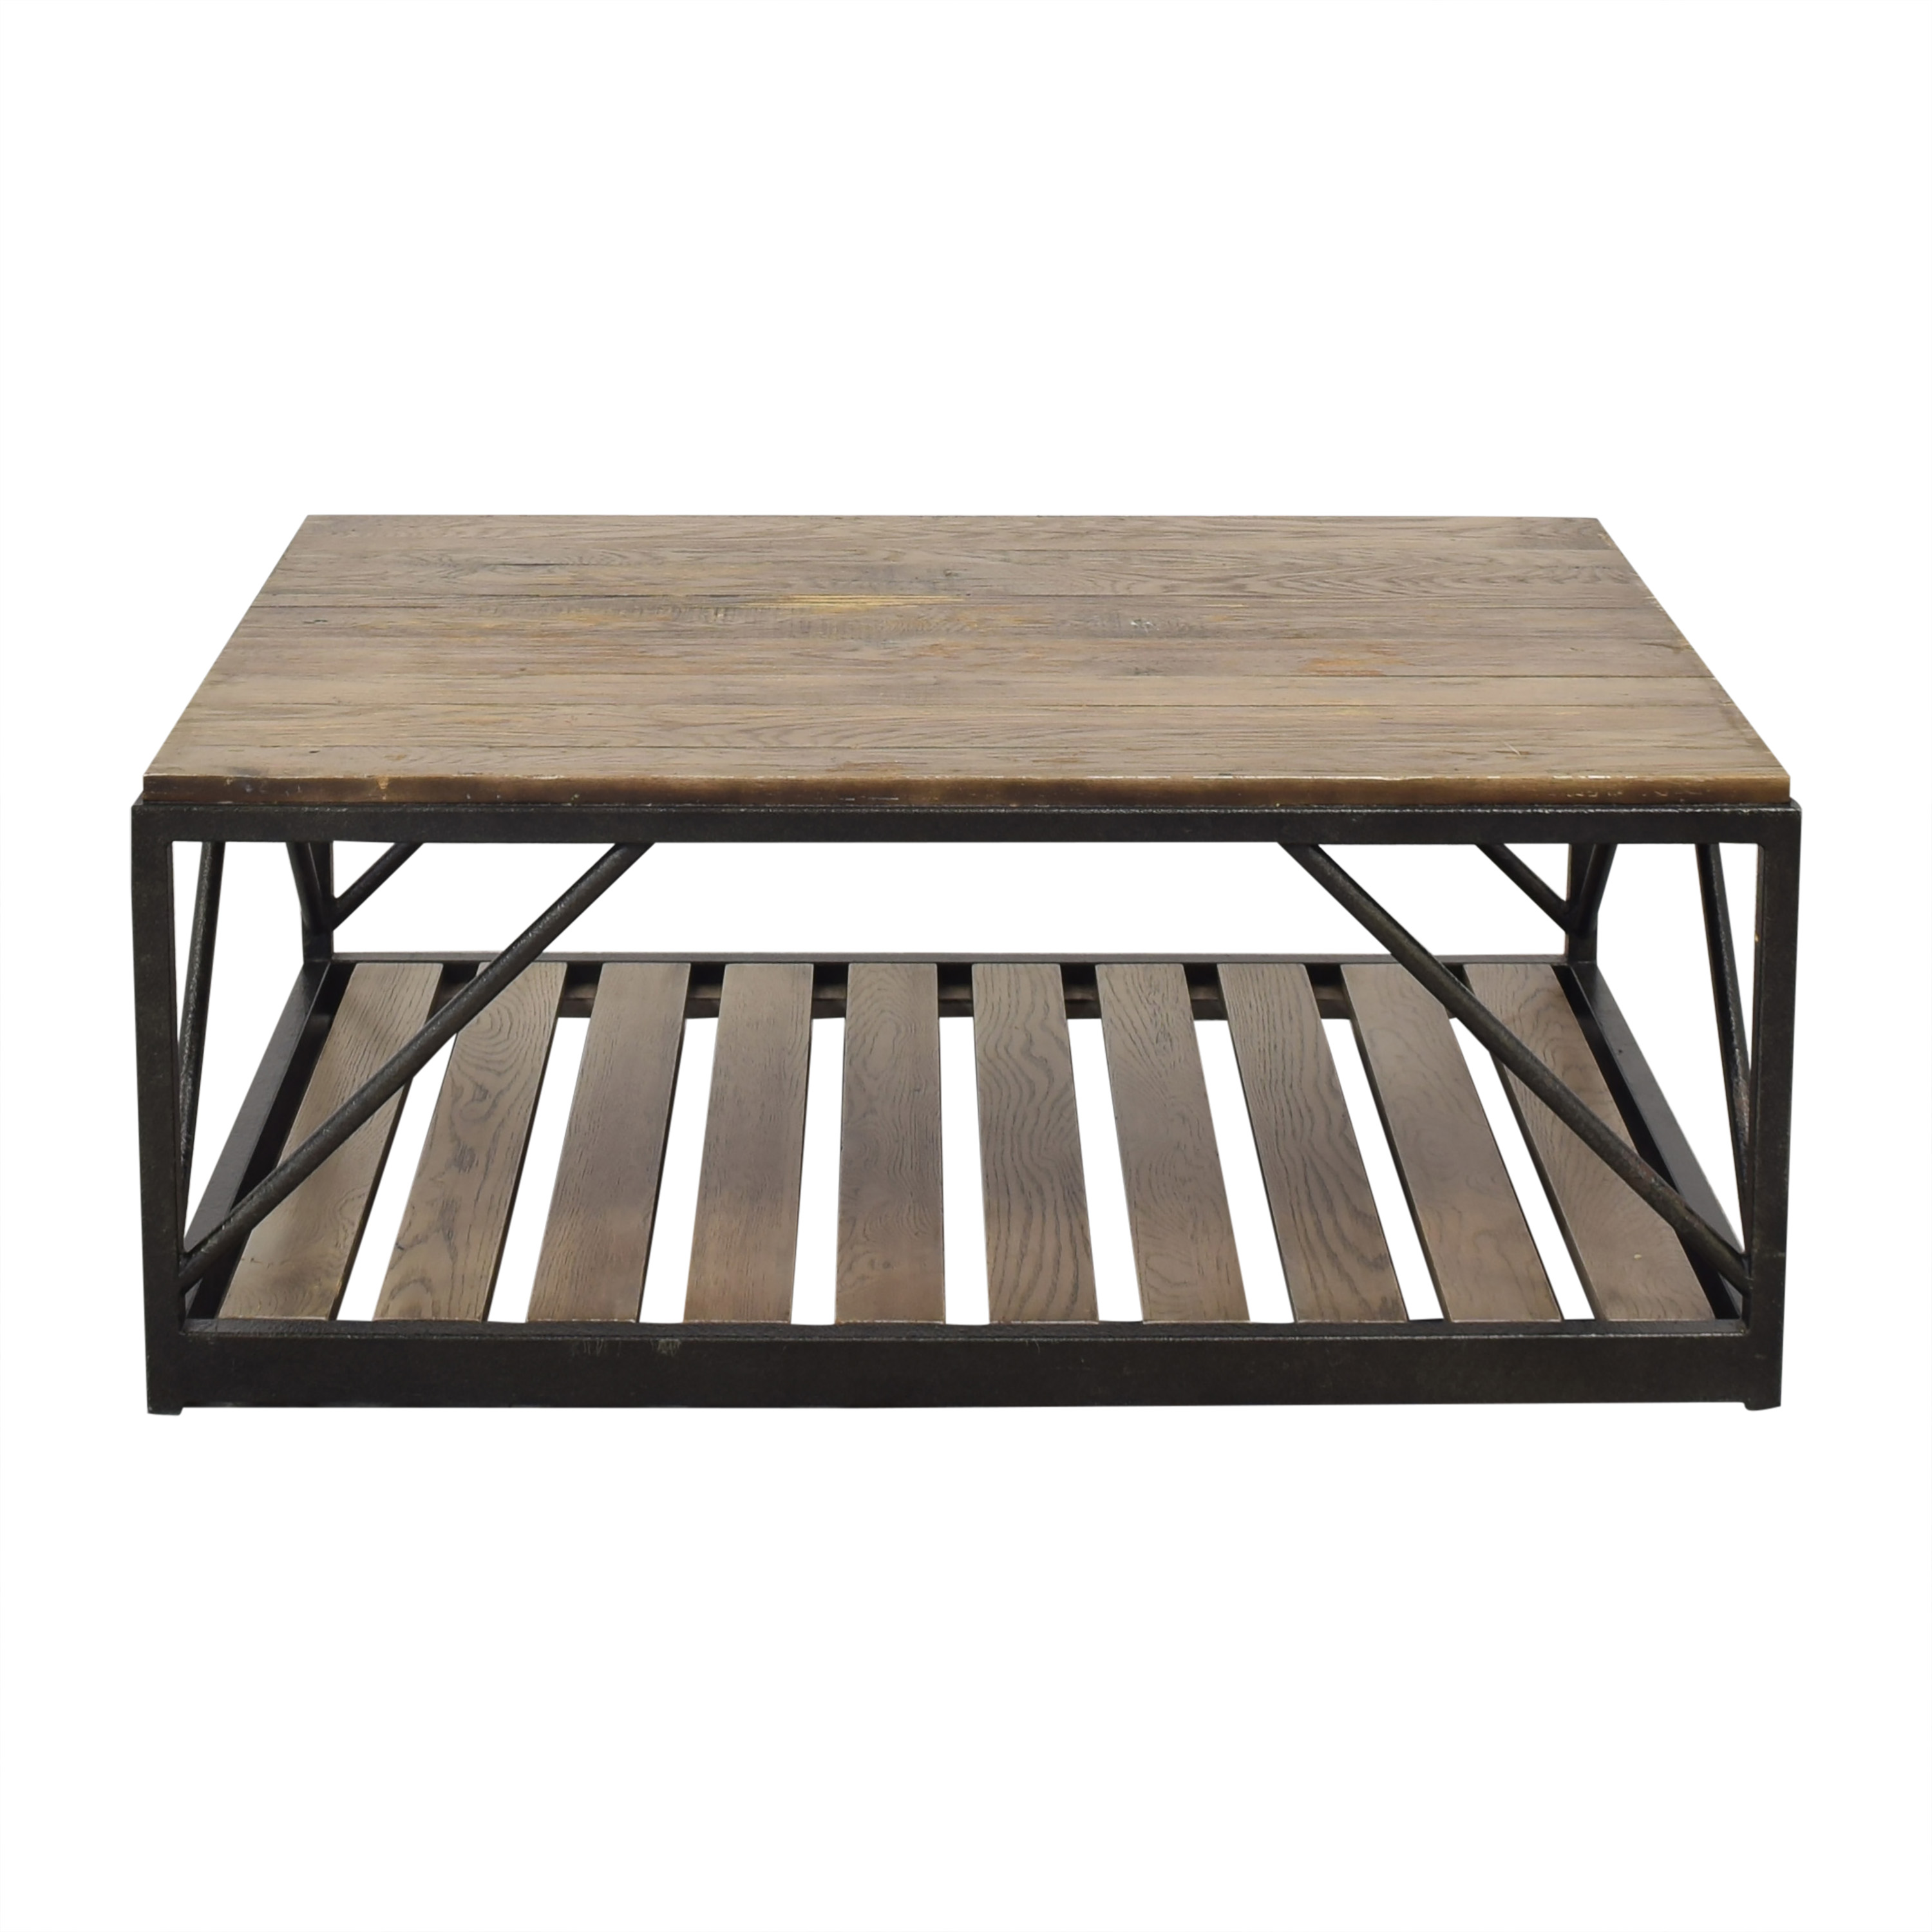 Ethan Allen Beam Metal Base Coffee Table / Tables